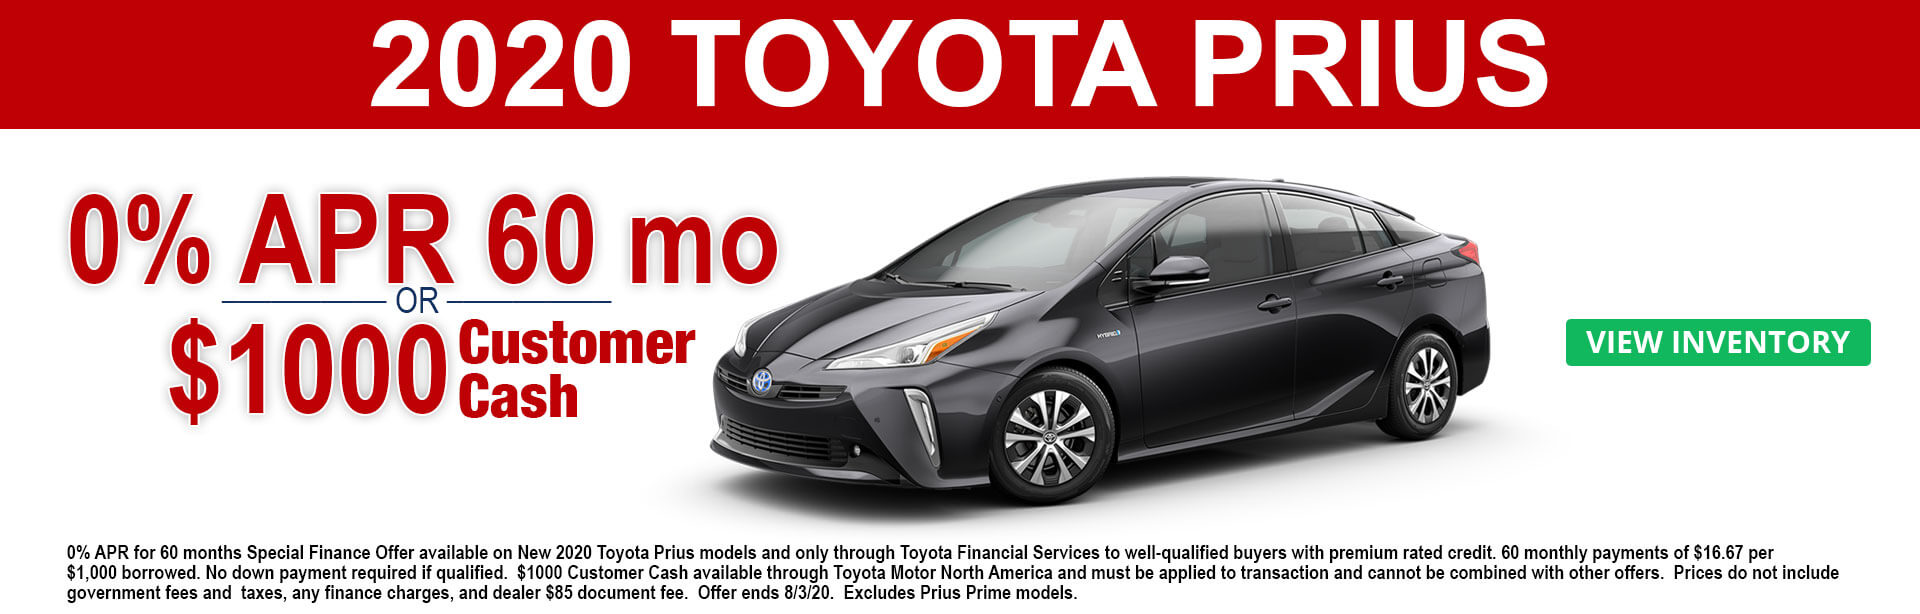 2020 Prius APR and Customer Cash Offers